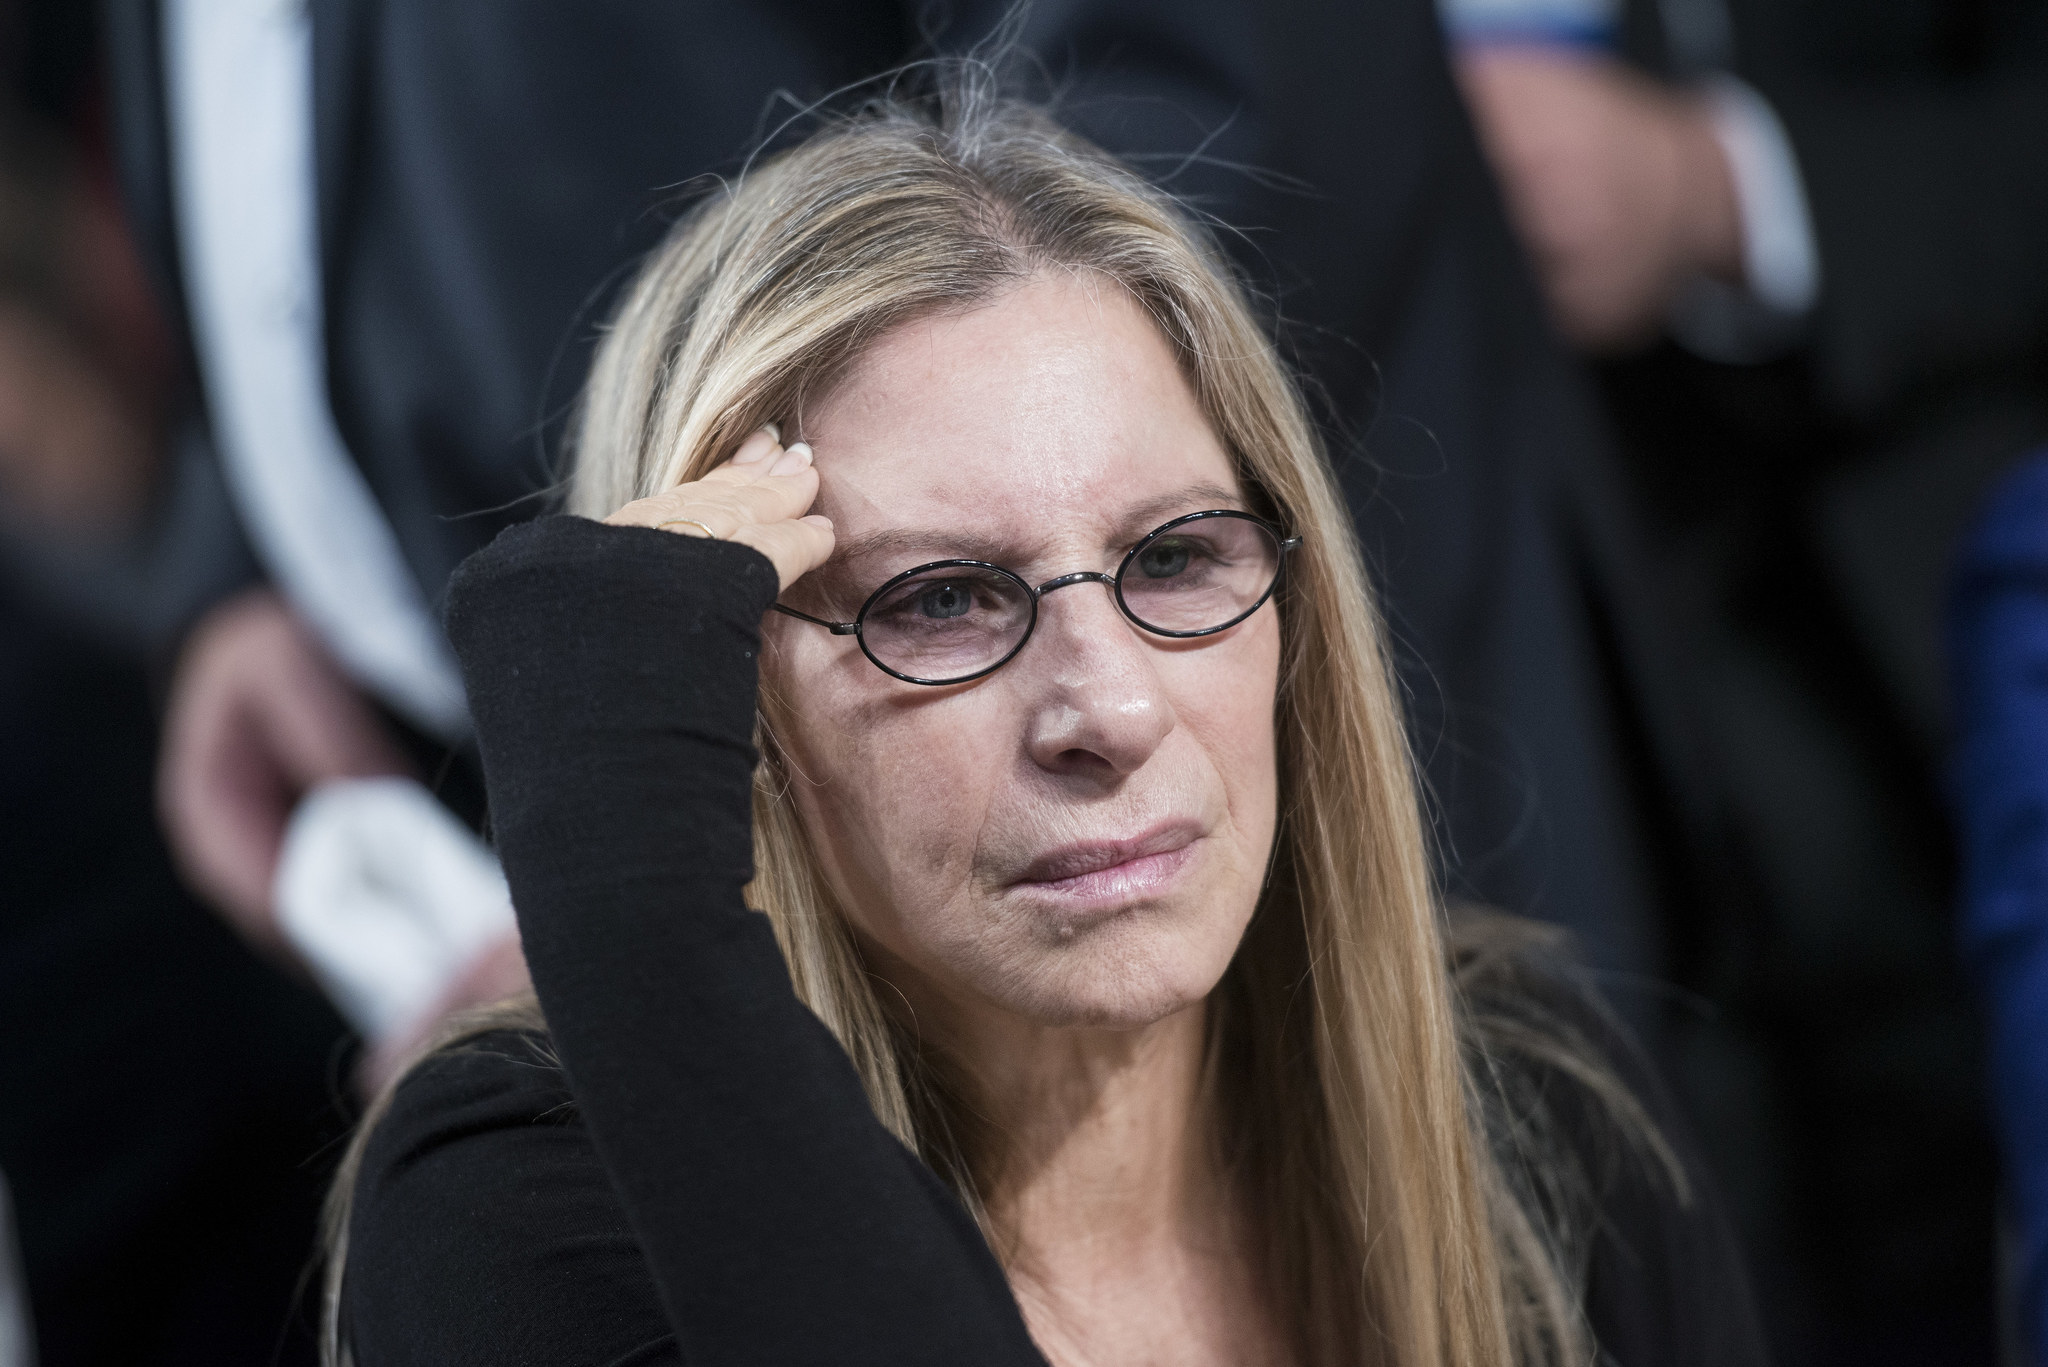 Barbra Streisand Wants the Golden Globes to Acknowledge Female Directors